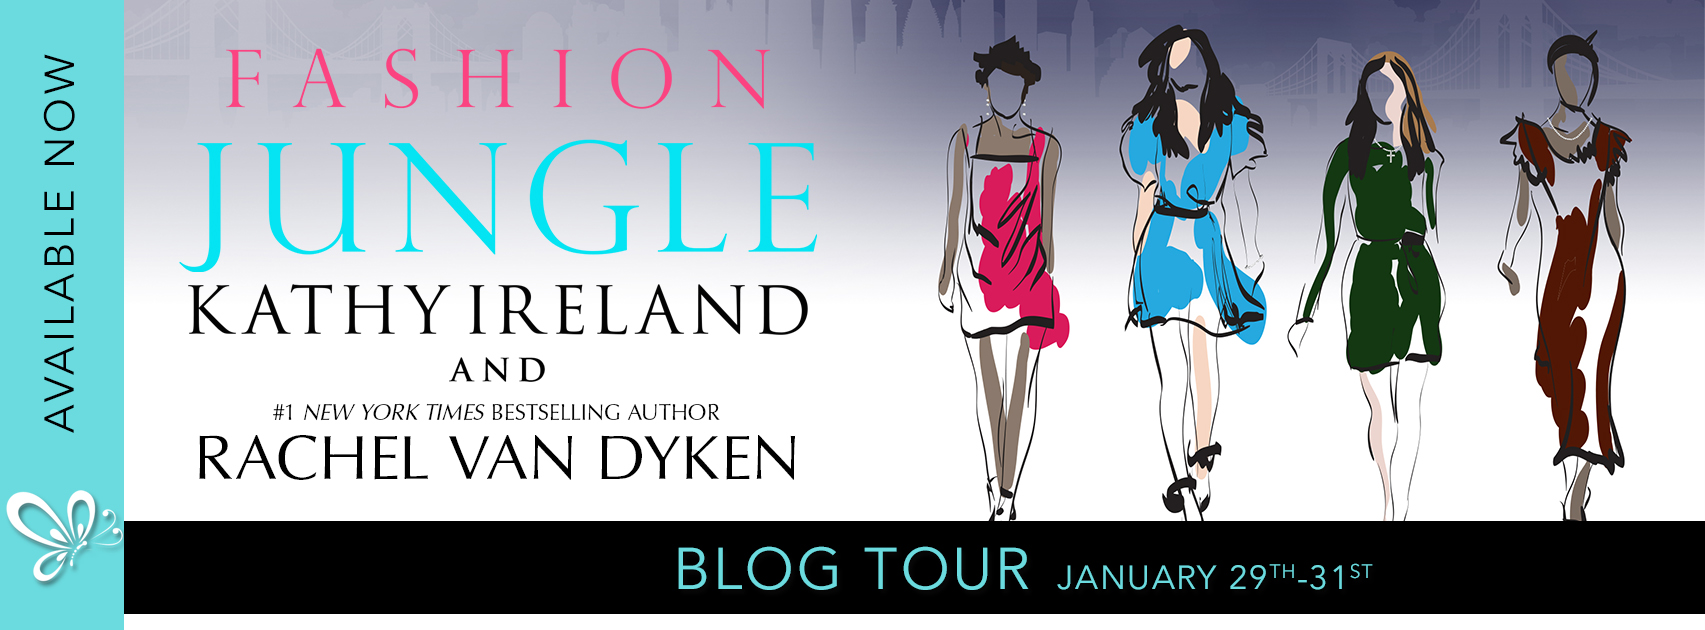 Blog Tour: Fashion Jungle by Kathy Ireland and Rachel Van Dyken